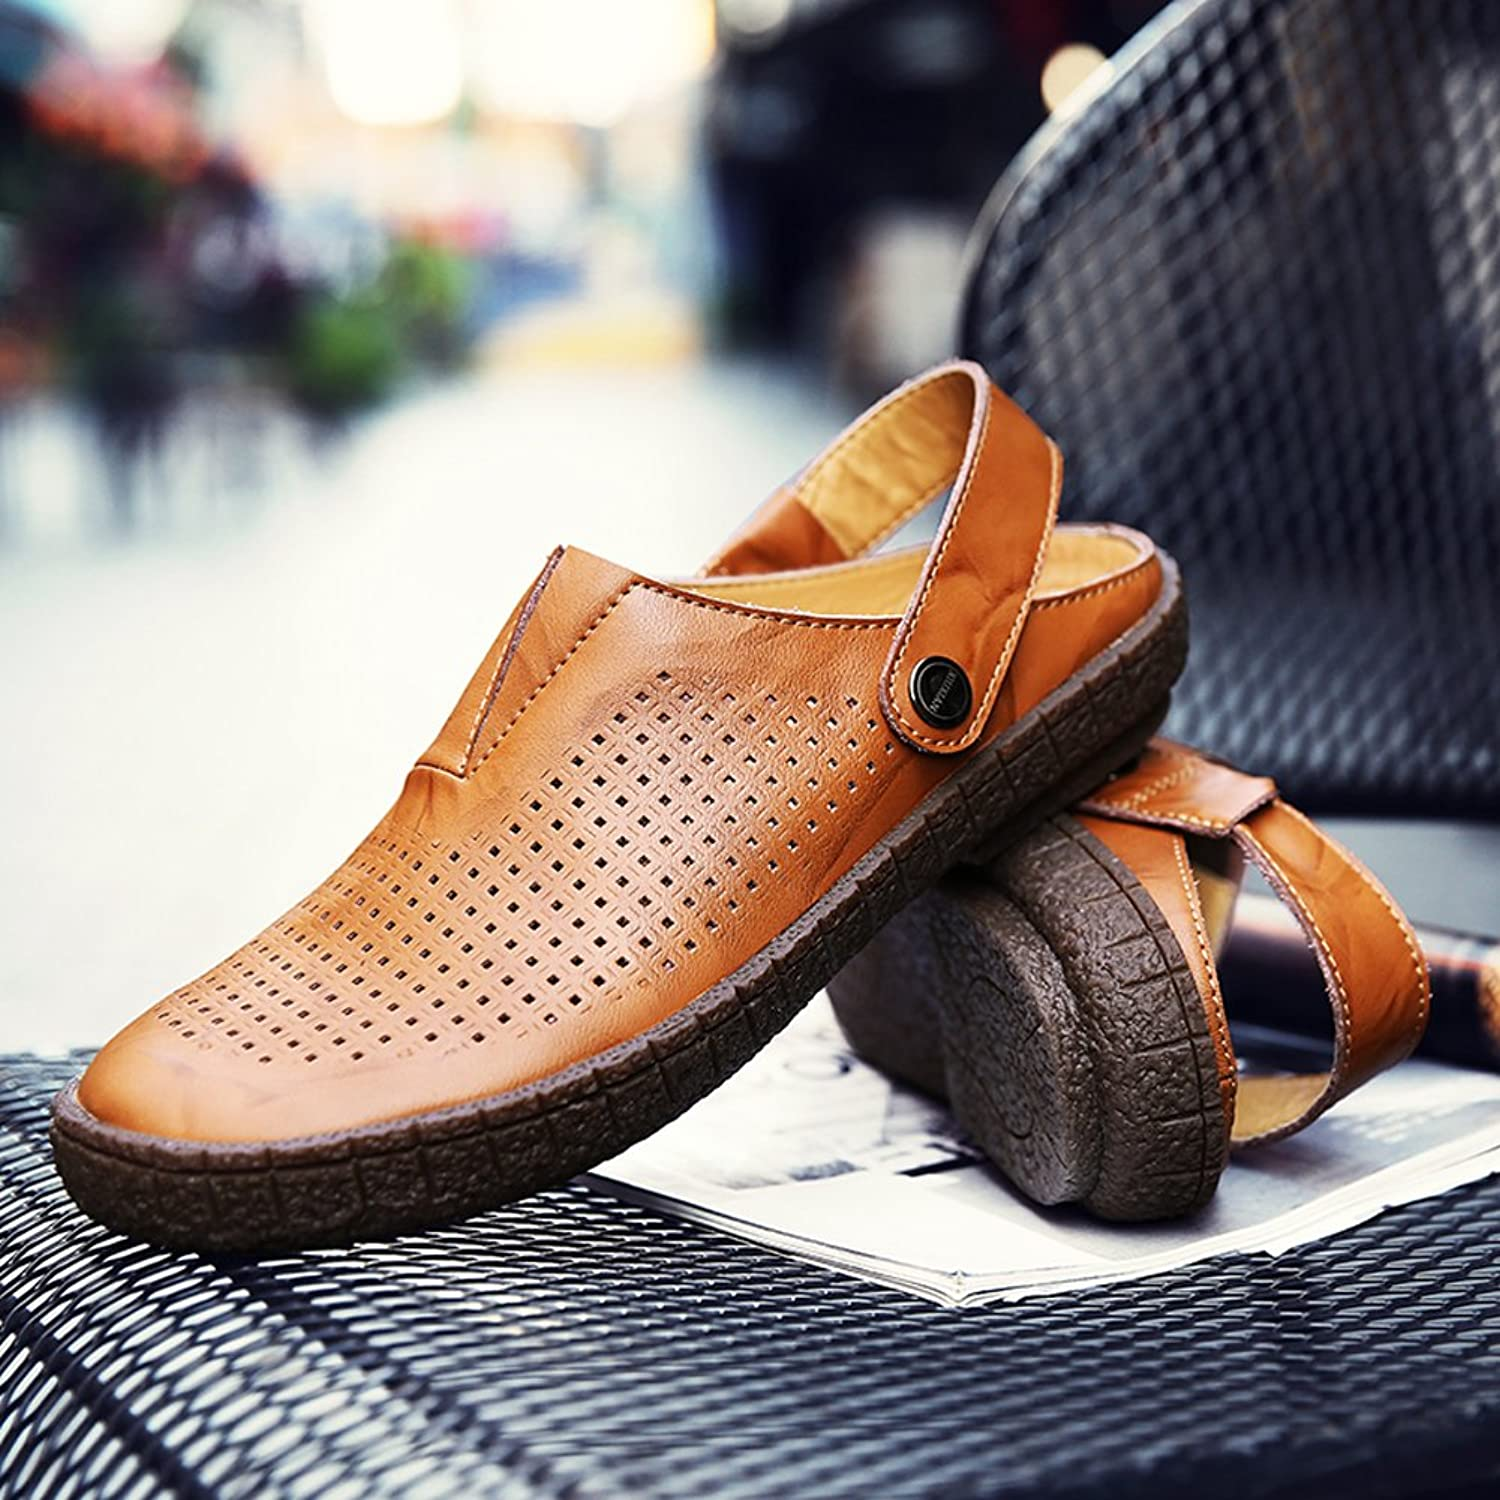 Clogs Mules Shoes Summer Men Garden Sports Leather Sandals Cowhide Dual use  Fashion Hole Casual Fisherman Beach Strap Hiking: Amazon.co.uk: Shoes & Bags